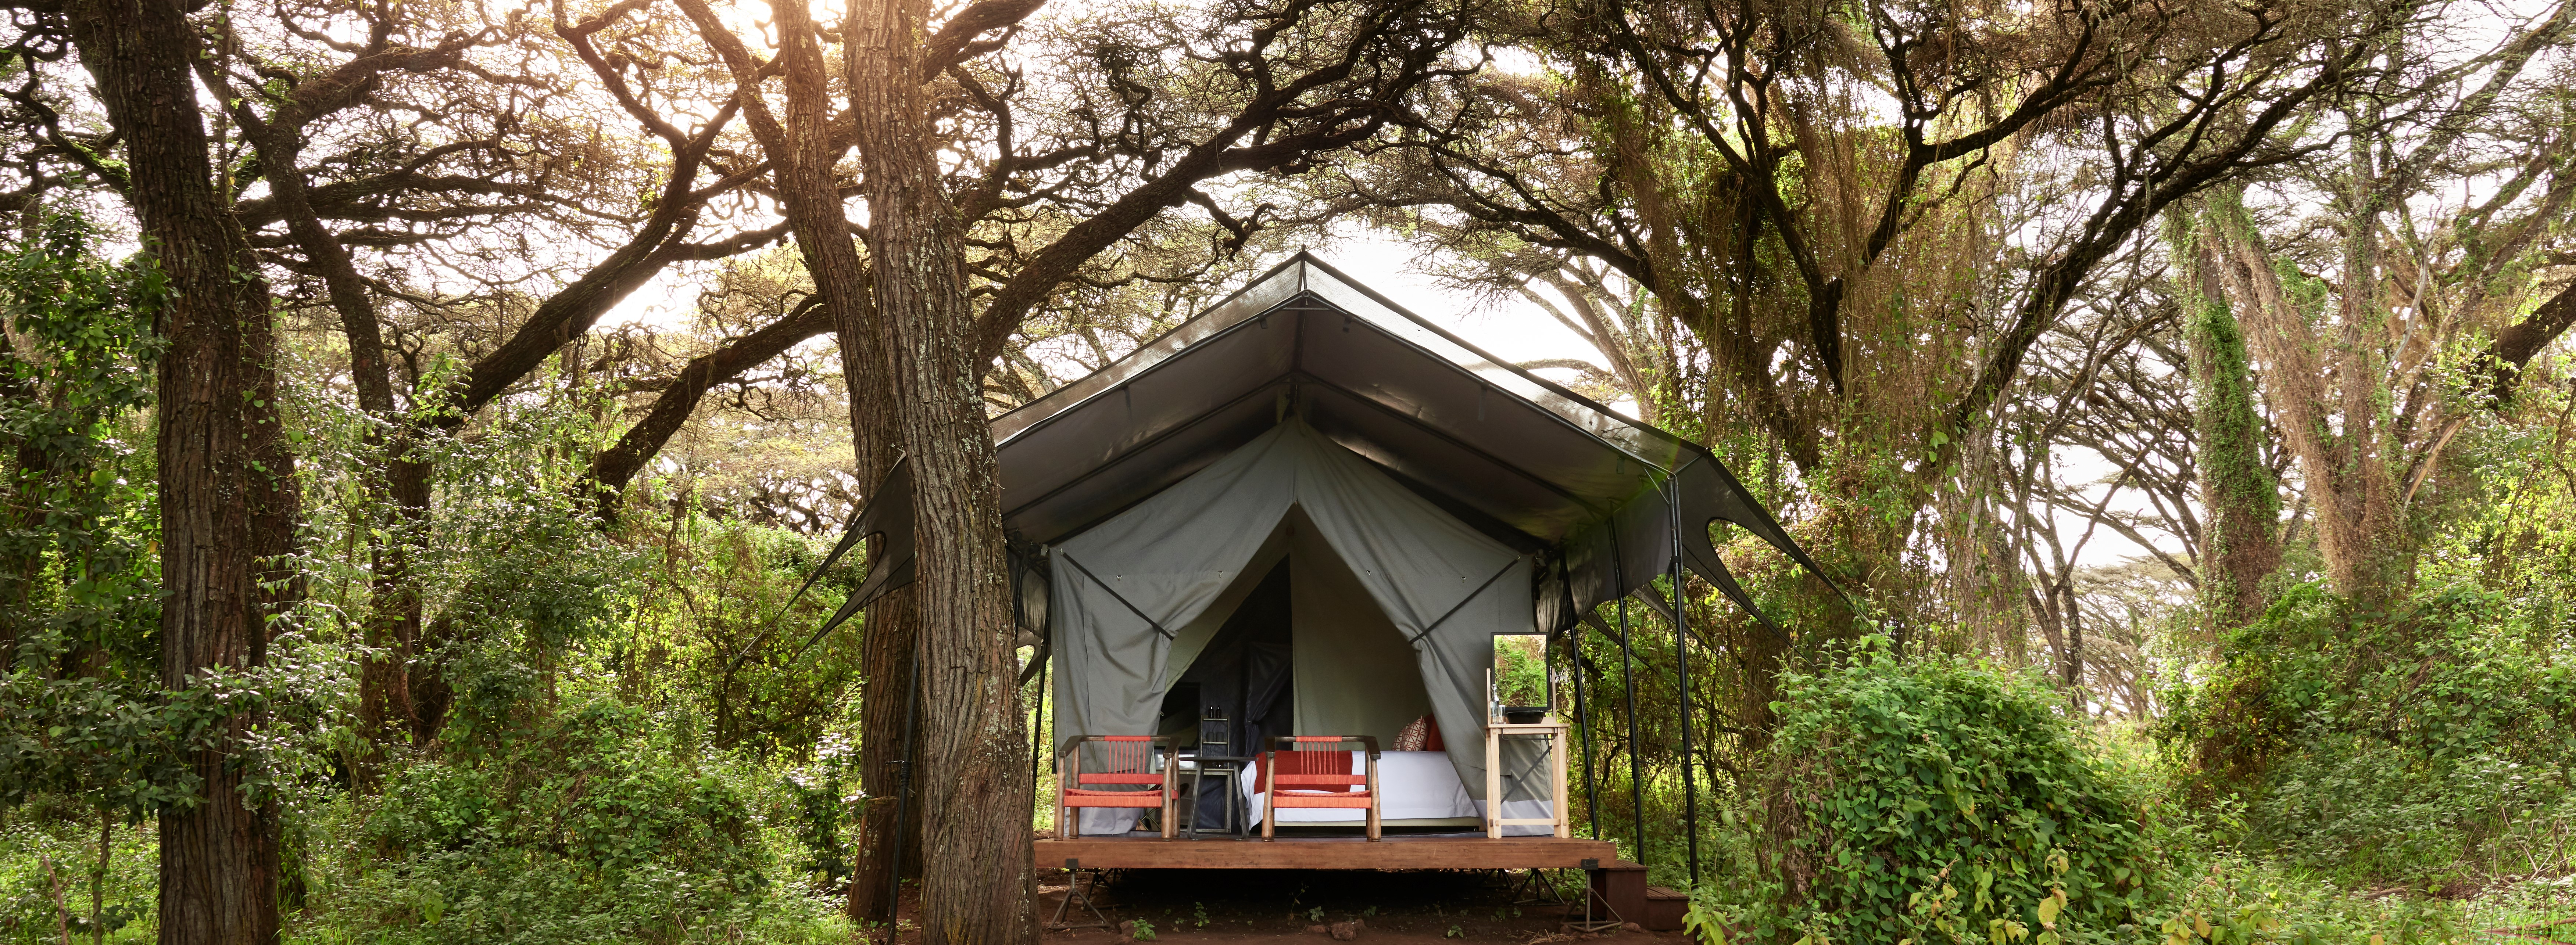 ngorongoro-crater-safari-camp